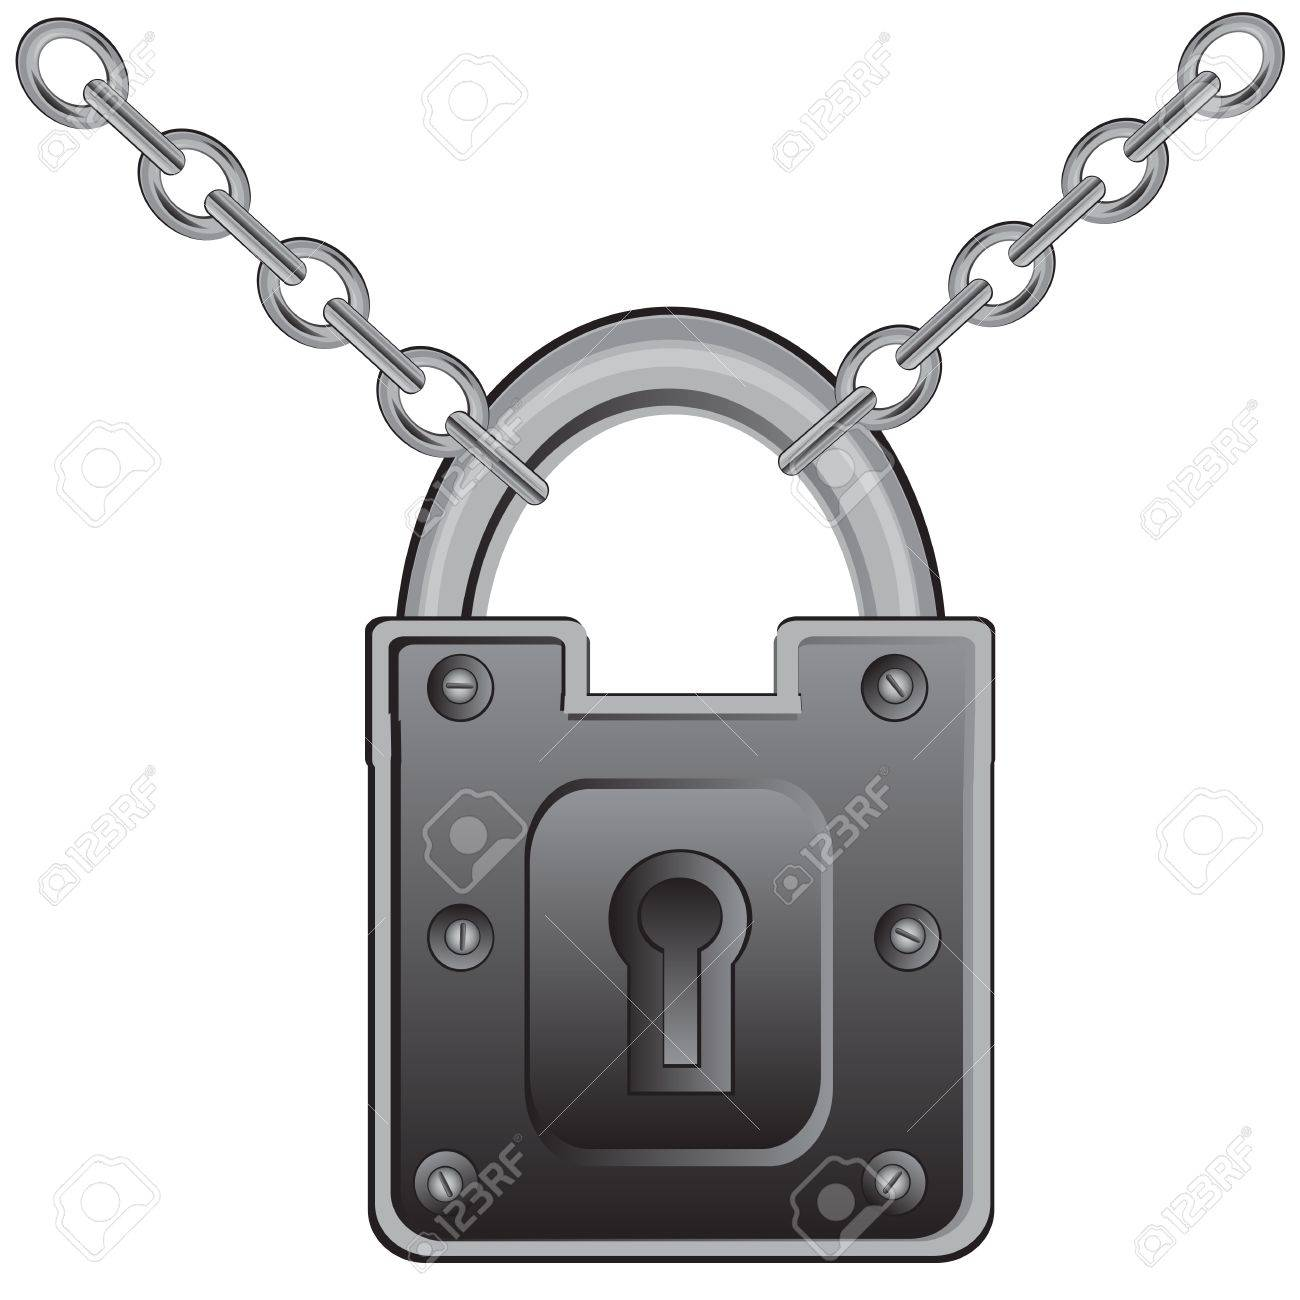 Door Lock Chain Big Door Lock On Chain From Metal Royalty Free Cliparts Vectors